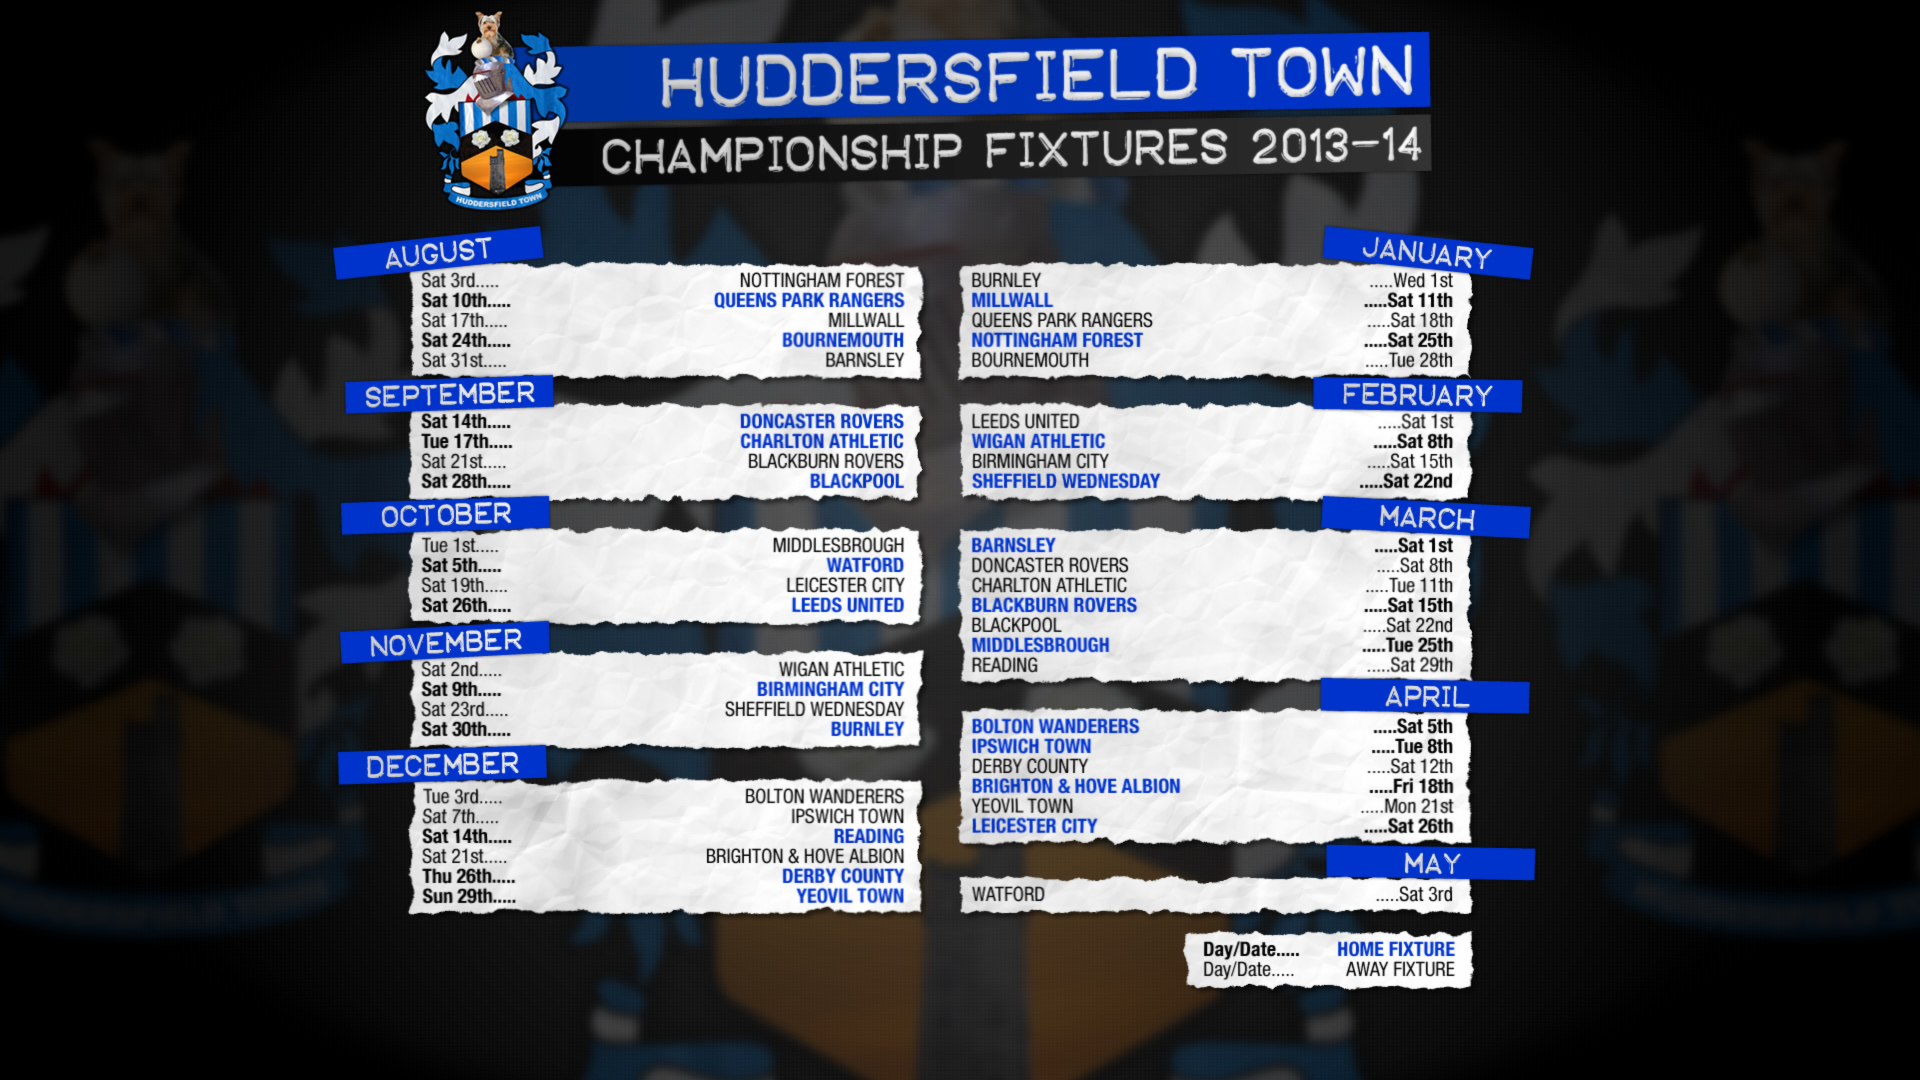 Desktop Fixture List | DATM - Down At The Mac - Huddersfield Town